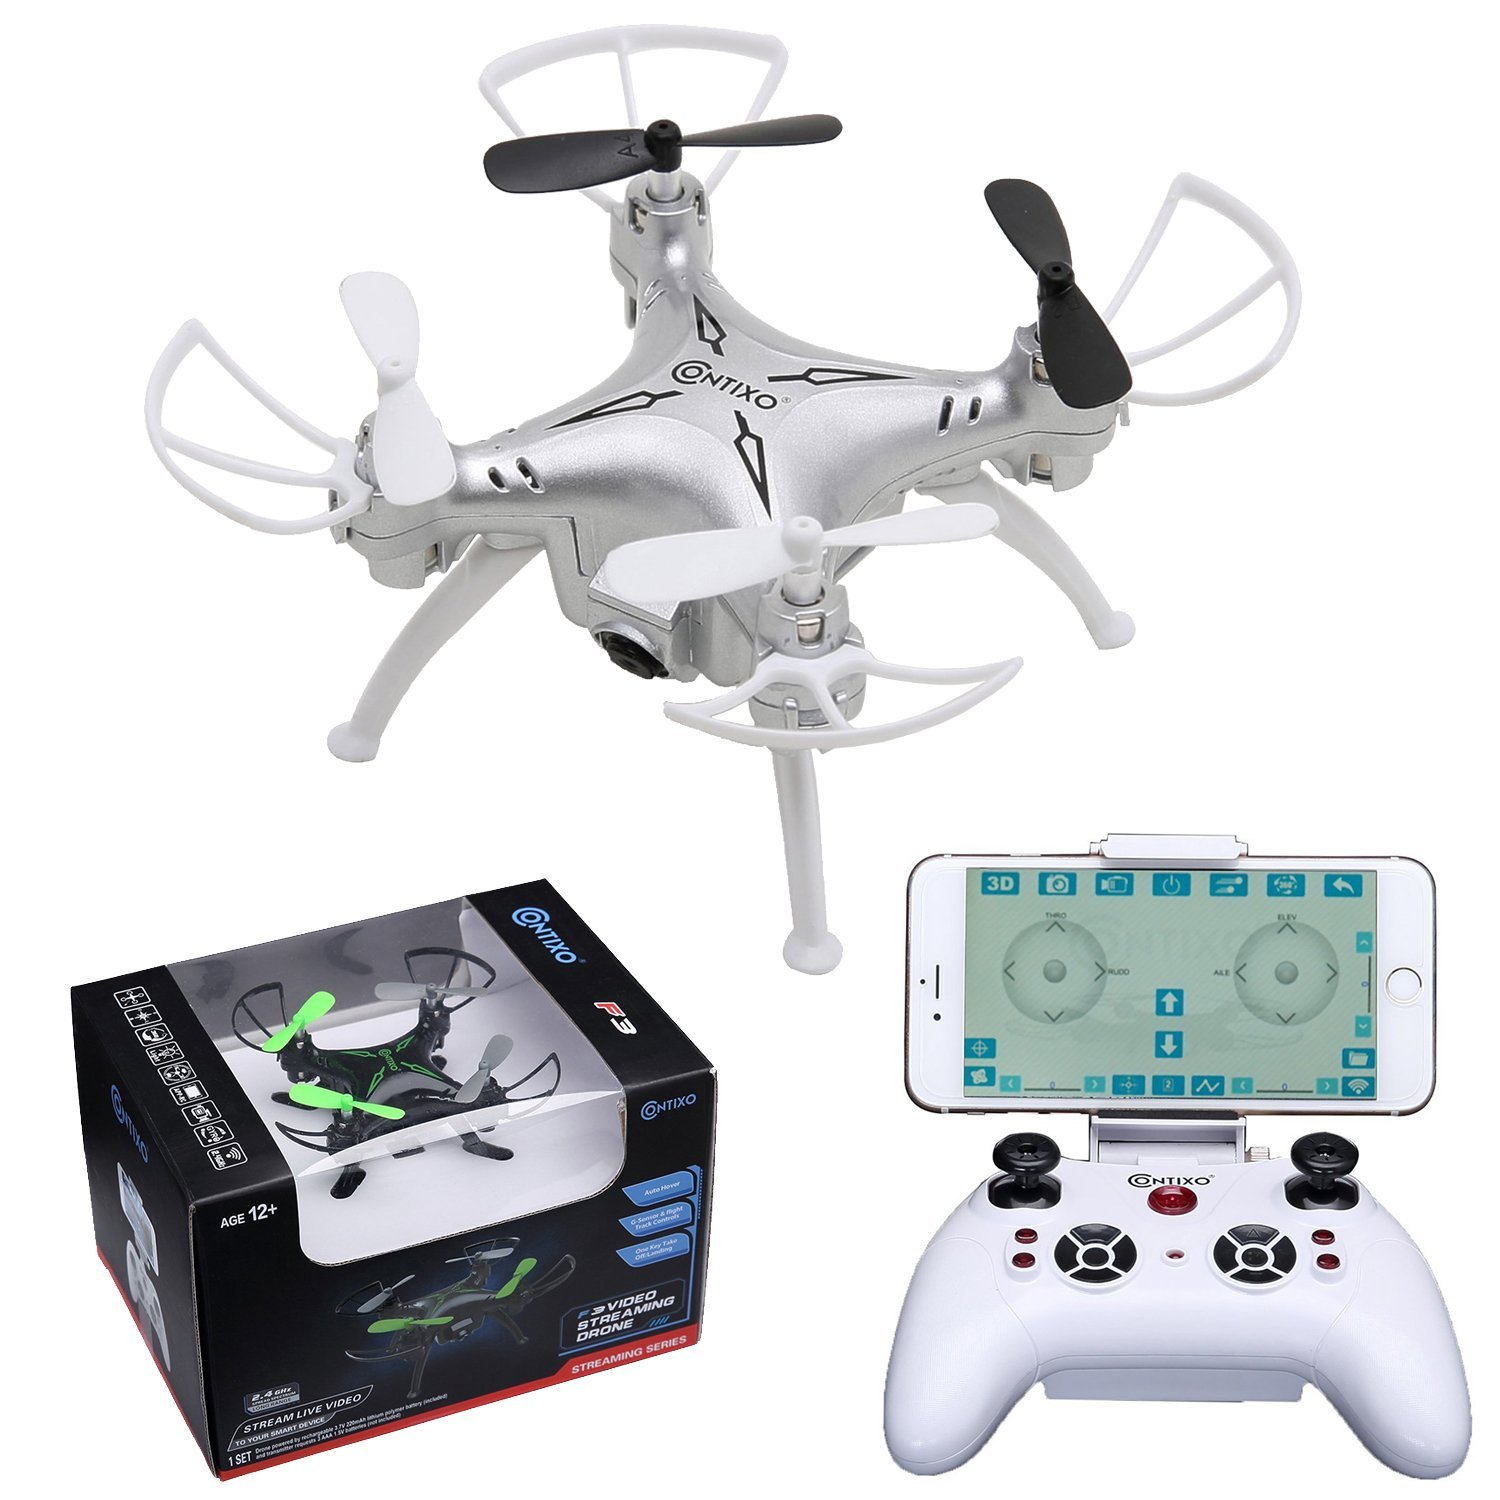 Contixo F3 World's Easiest Fly App Track-Controlled Mini Drone 720P HD WiFi Camera, 2.4GHz... by Contixo